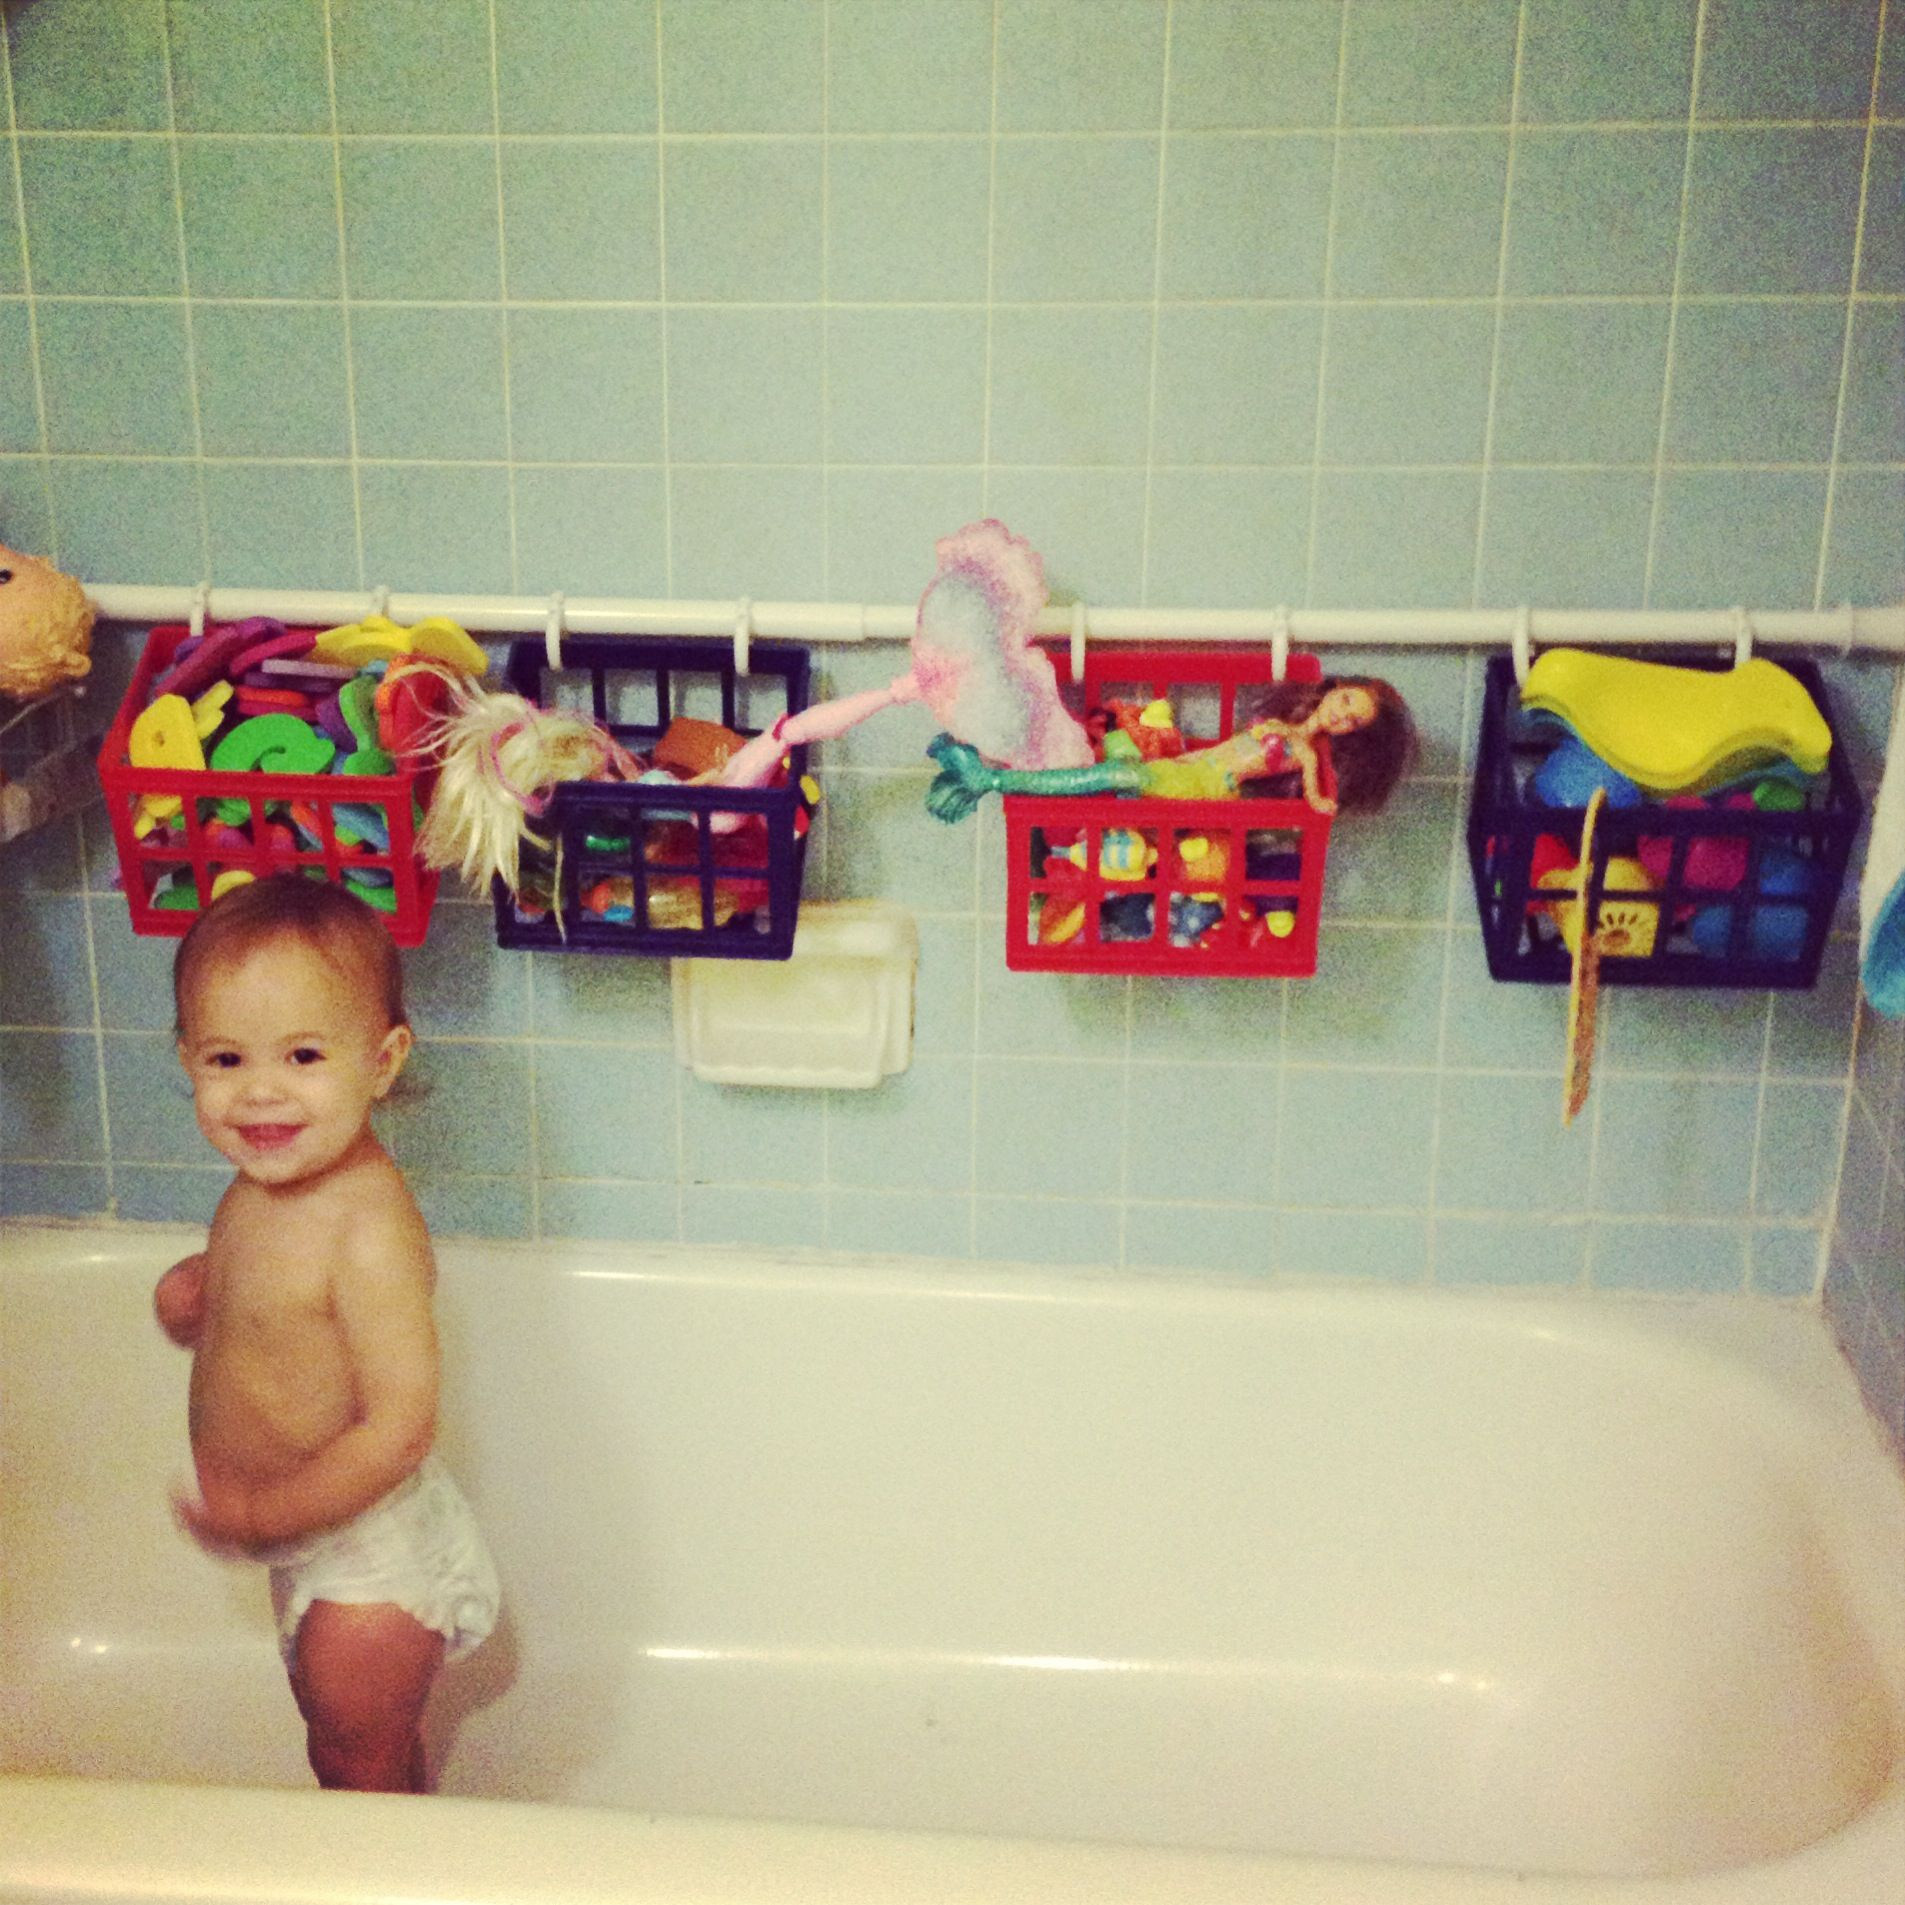 Bathroom Toy Storage Ideas: Bath Toy Storage Solution For $10! I'm Gonna Make This A